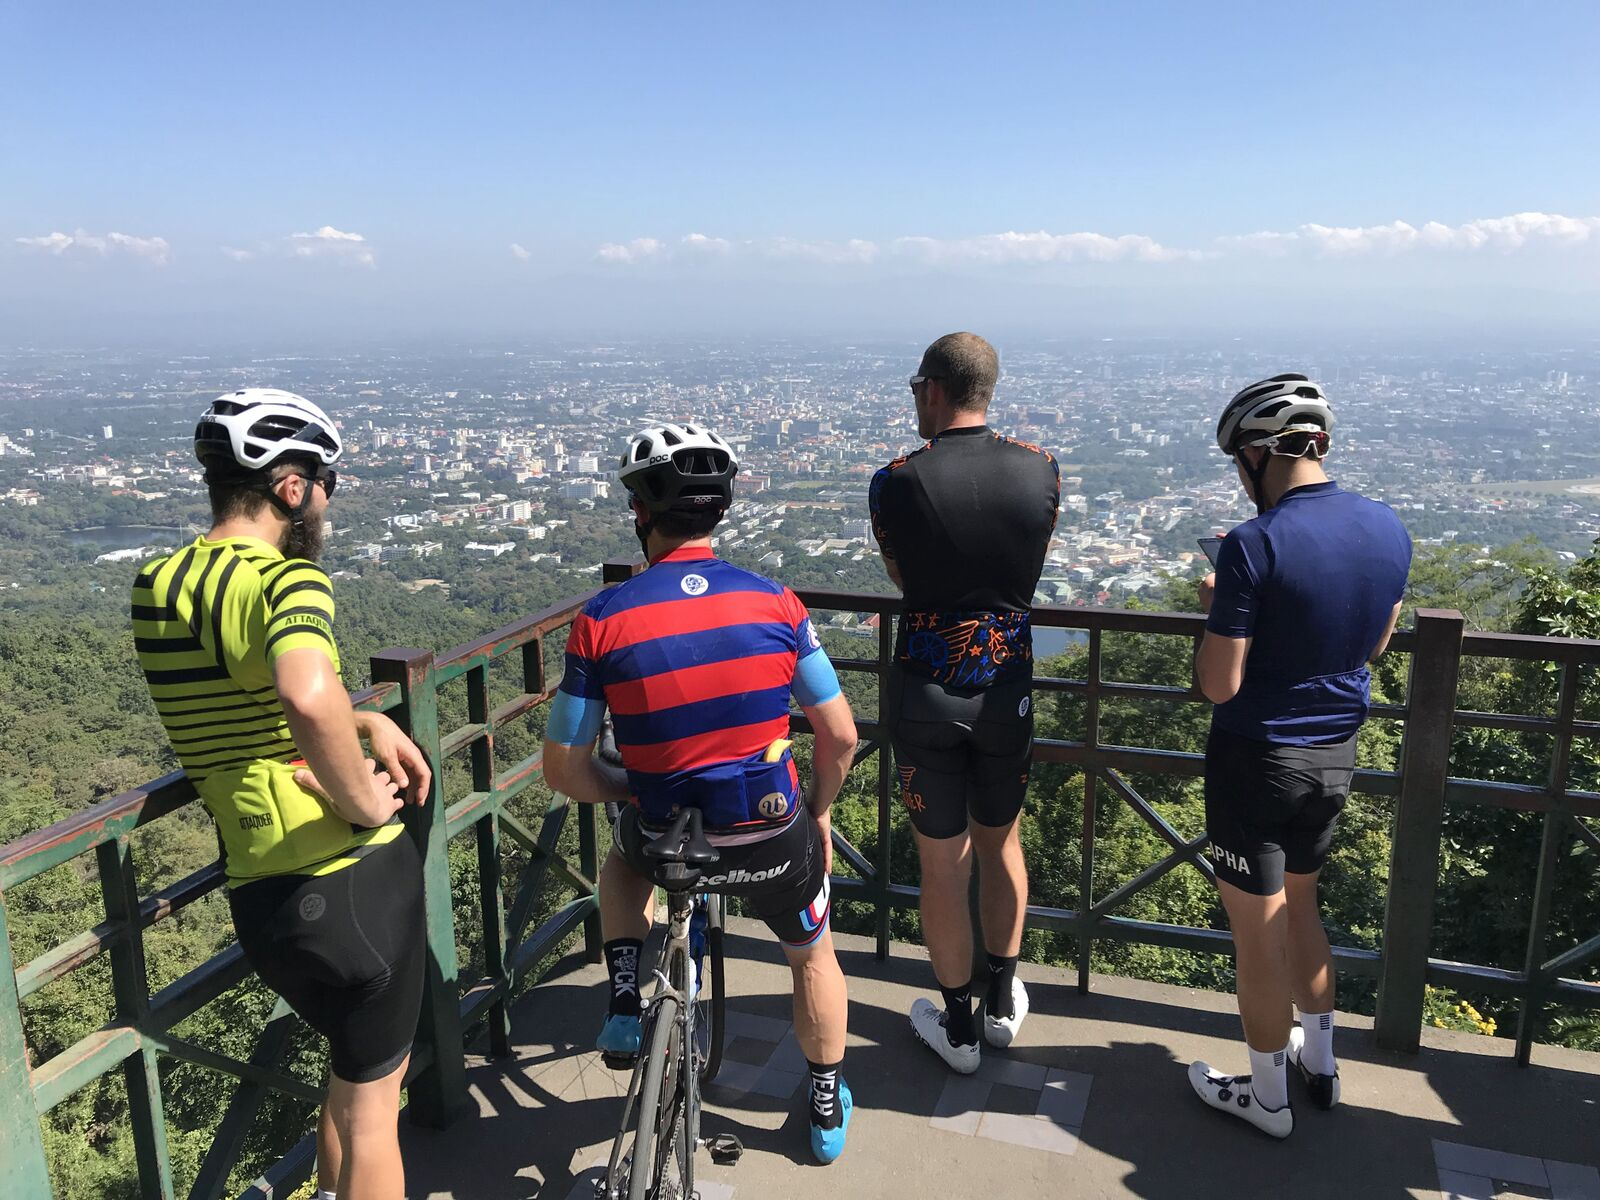 Went for a few extras up to the Doi Suthep lookout – the term dad pace is born